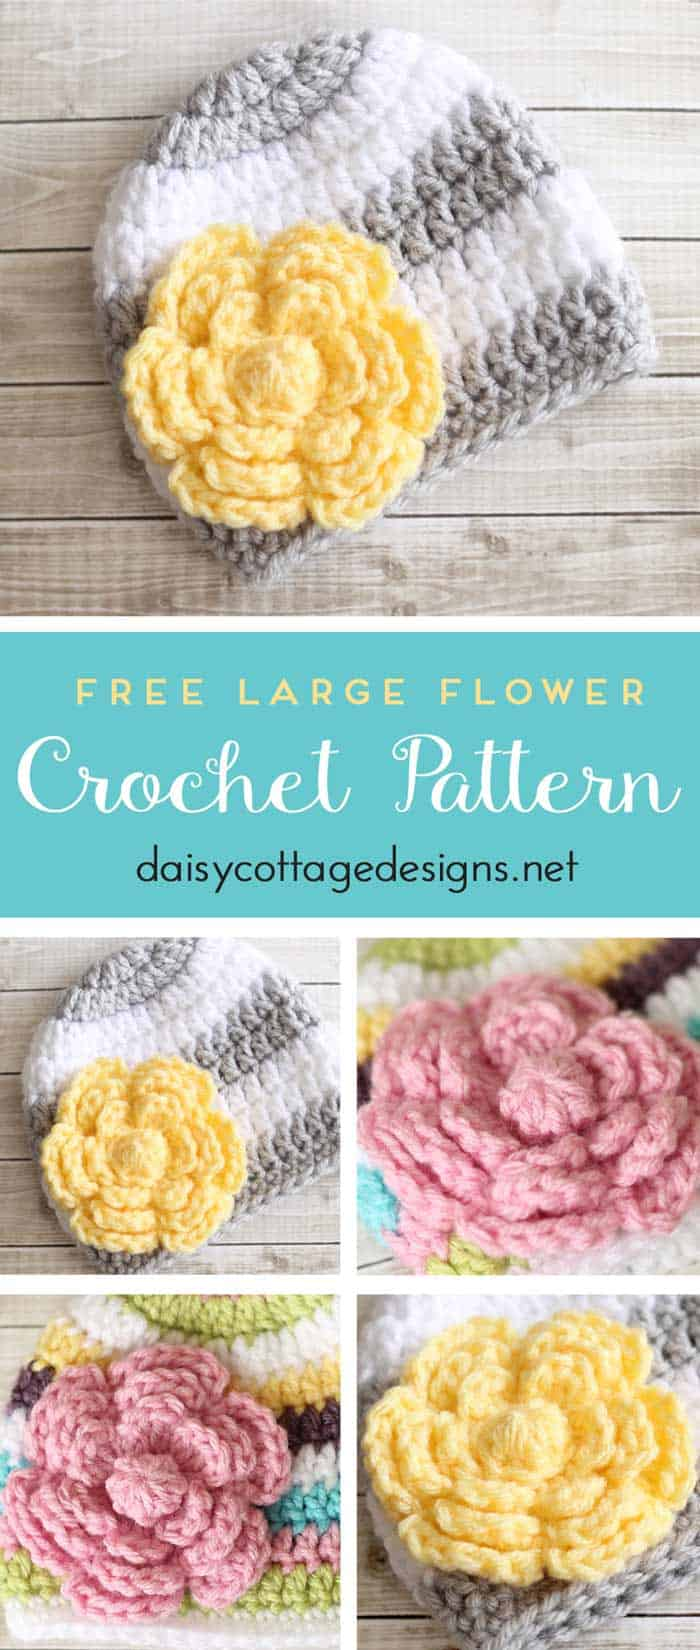 Free Crochet Pattern Large Flower : Pics Photos - Small Crochet Flower Patterns Free Crochet ...